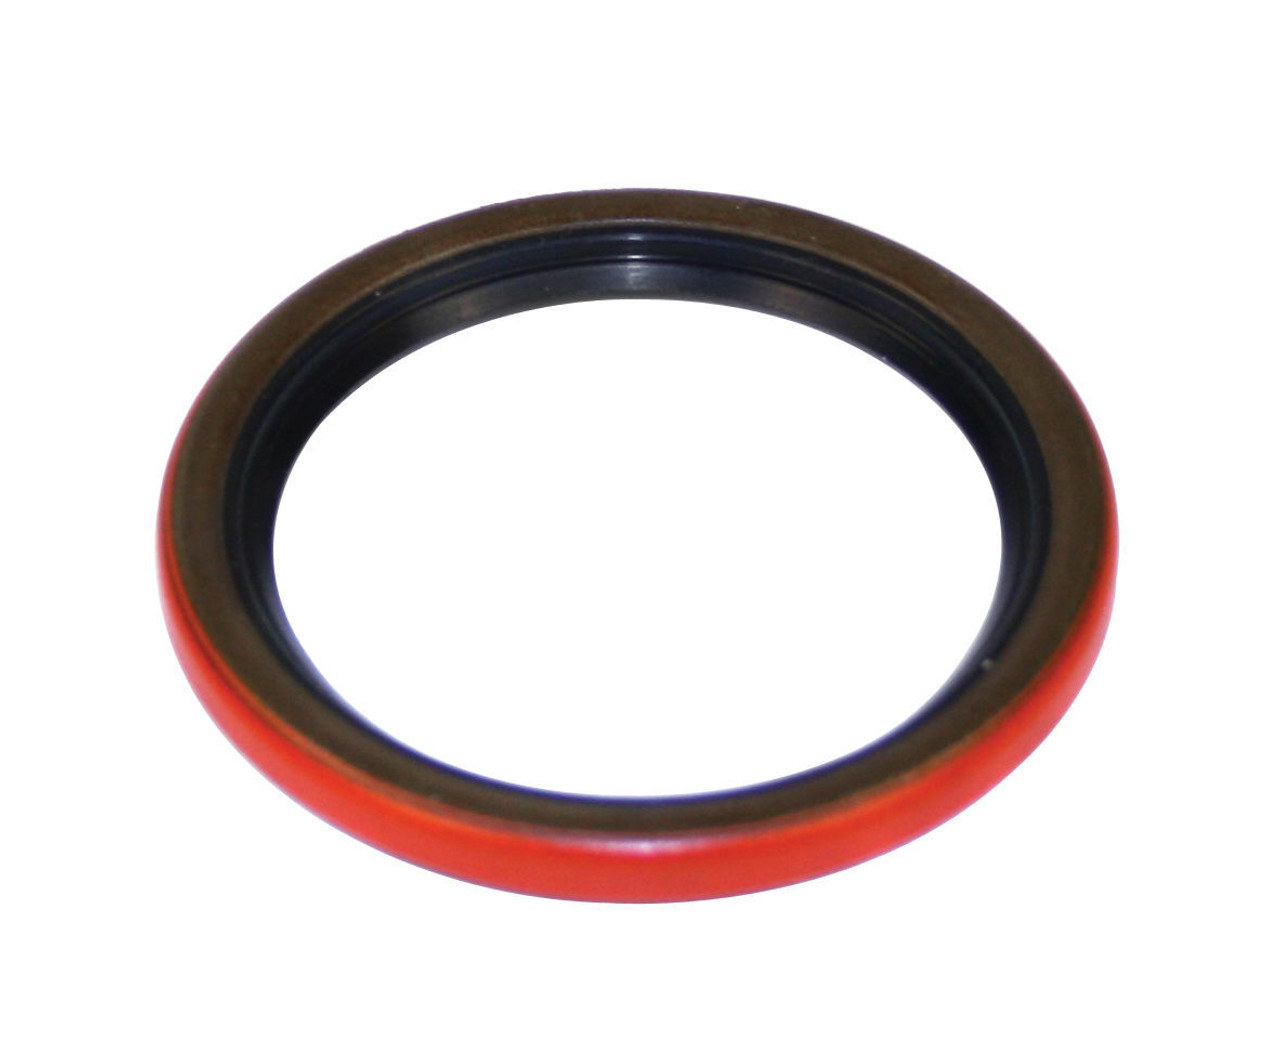 Seal, Replacement For Bolt-In & Machine-In Crank Pulley, Fits VW Bug Buggy, EMPI 8694